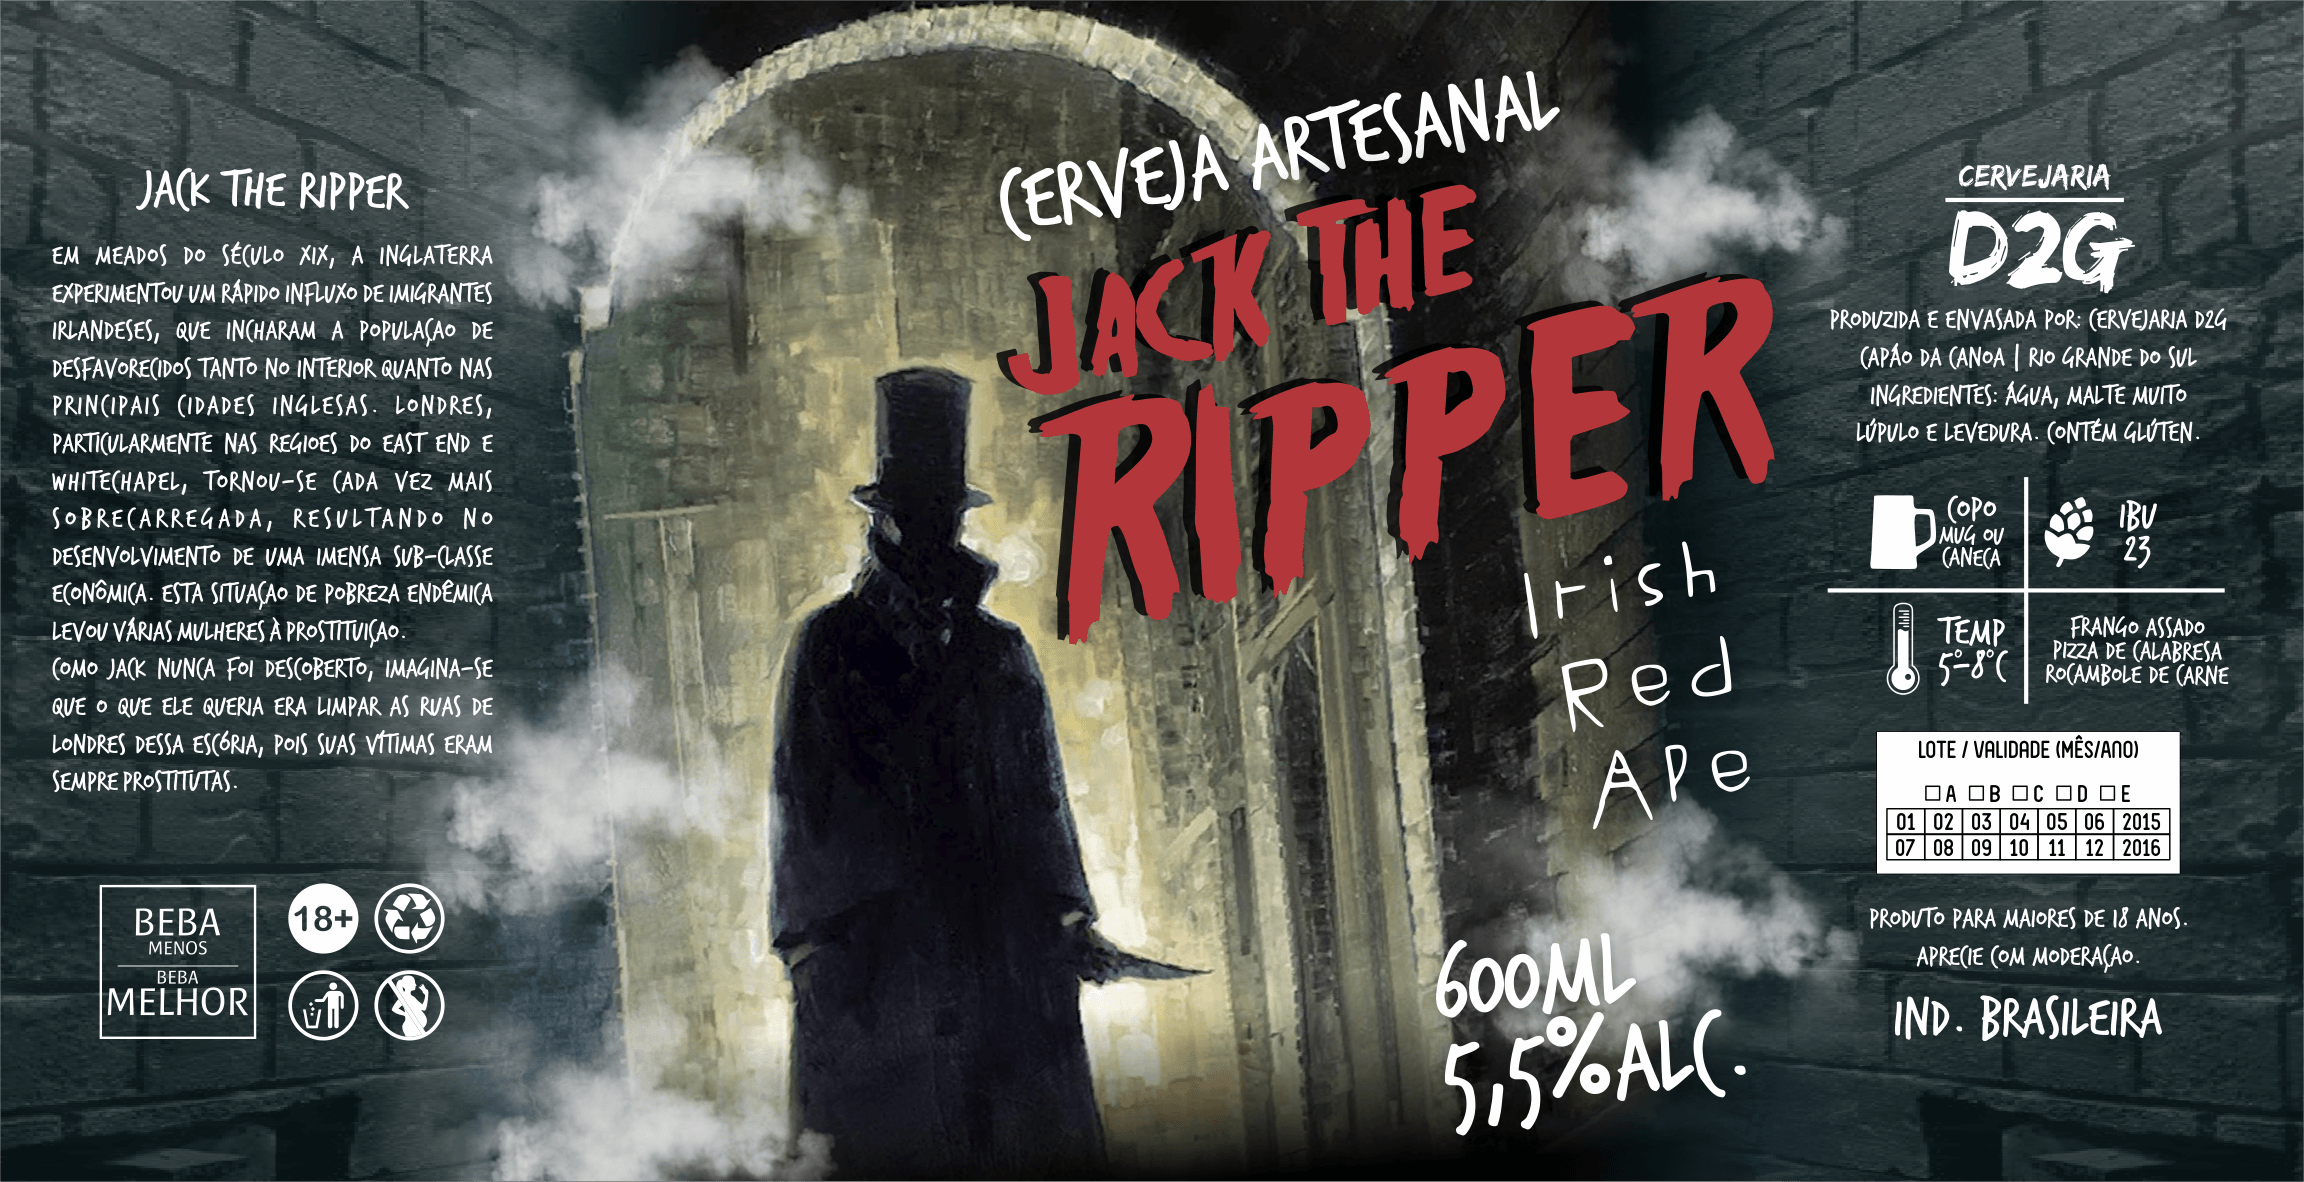 IRA - Jack The Ripper.png